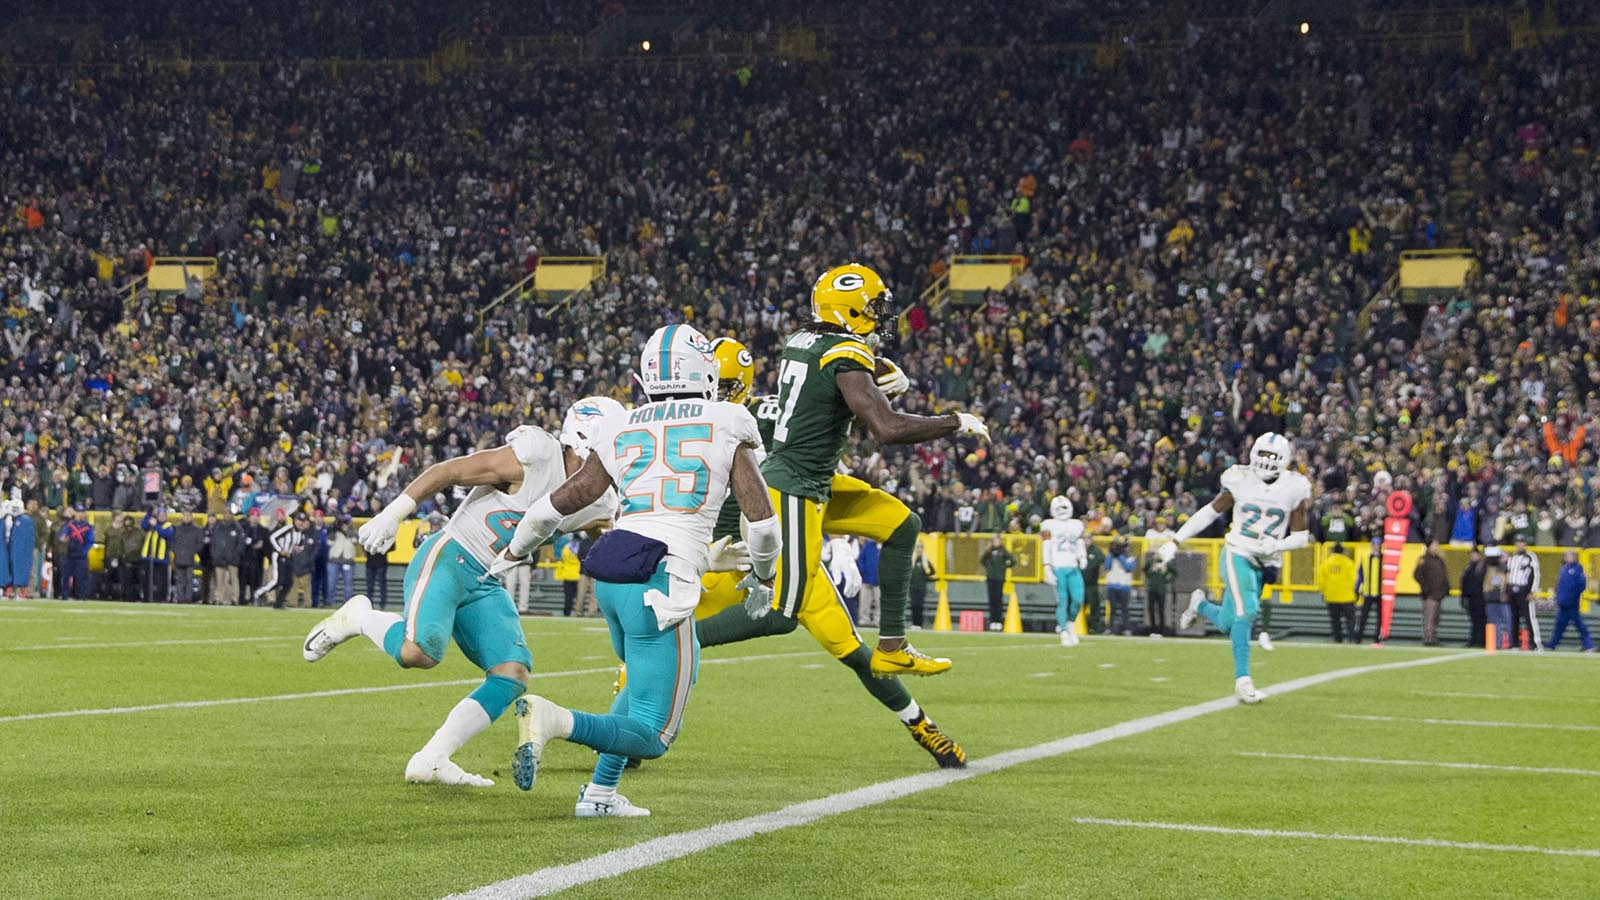 Nov 11, 2018; Green Bay, WI, USA; Green Bay Packers wide receiver Davante Adams (17) scores a touchdown pass during the third quarter against the Miami Dolphins at Lambeau Field. Mandatory Credit: Jeff Hanisch-USA TODAY Sports